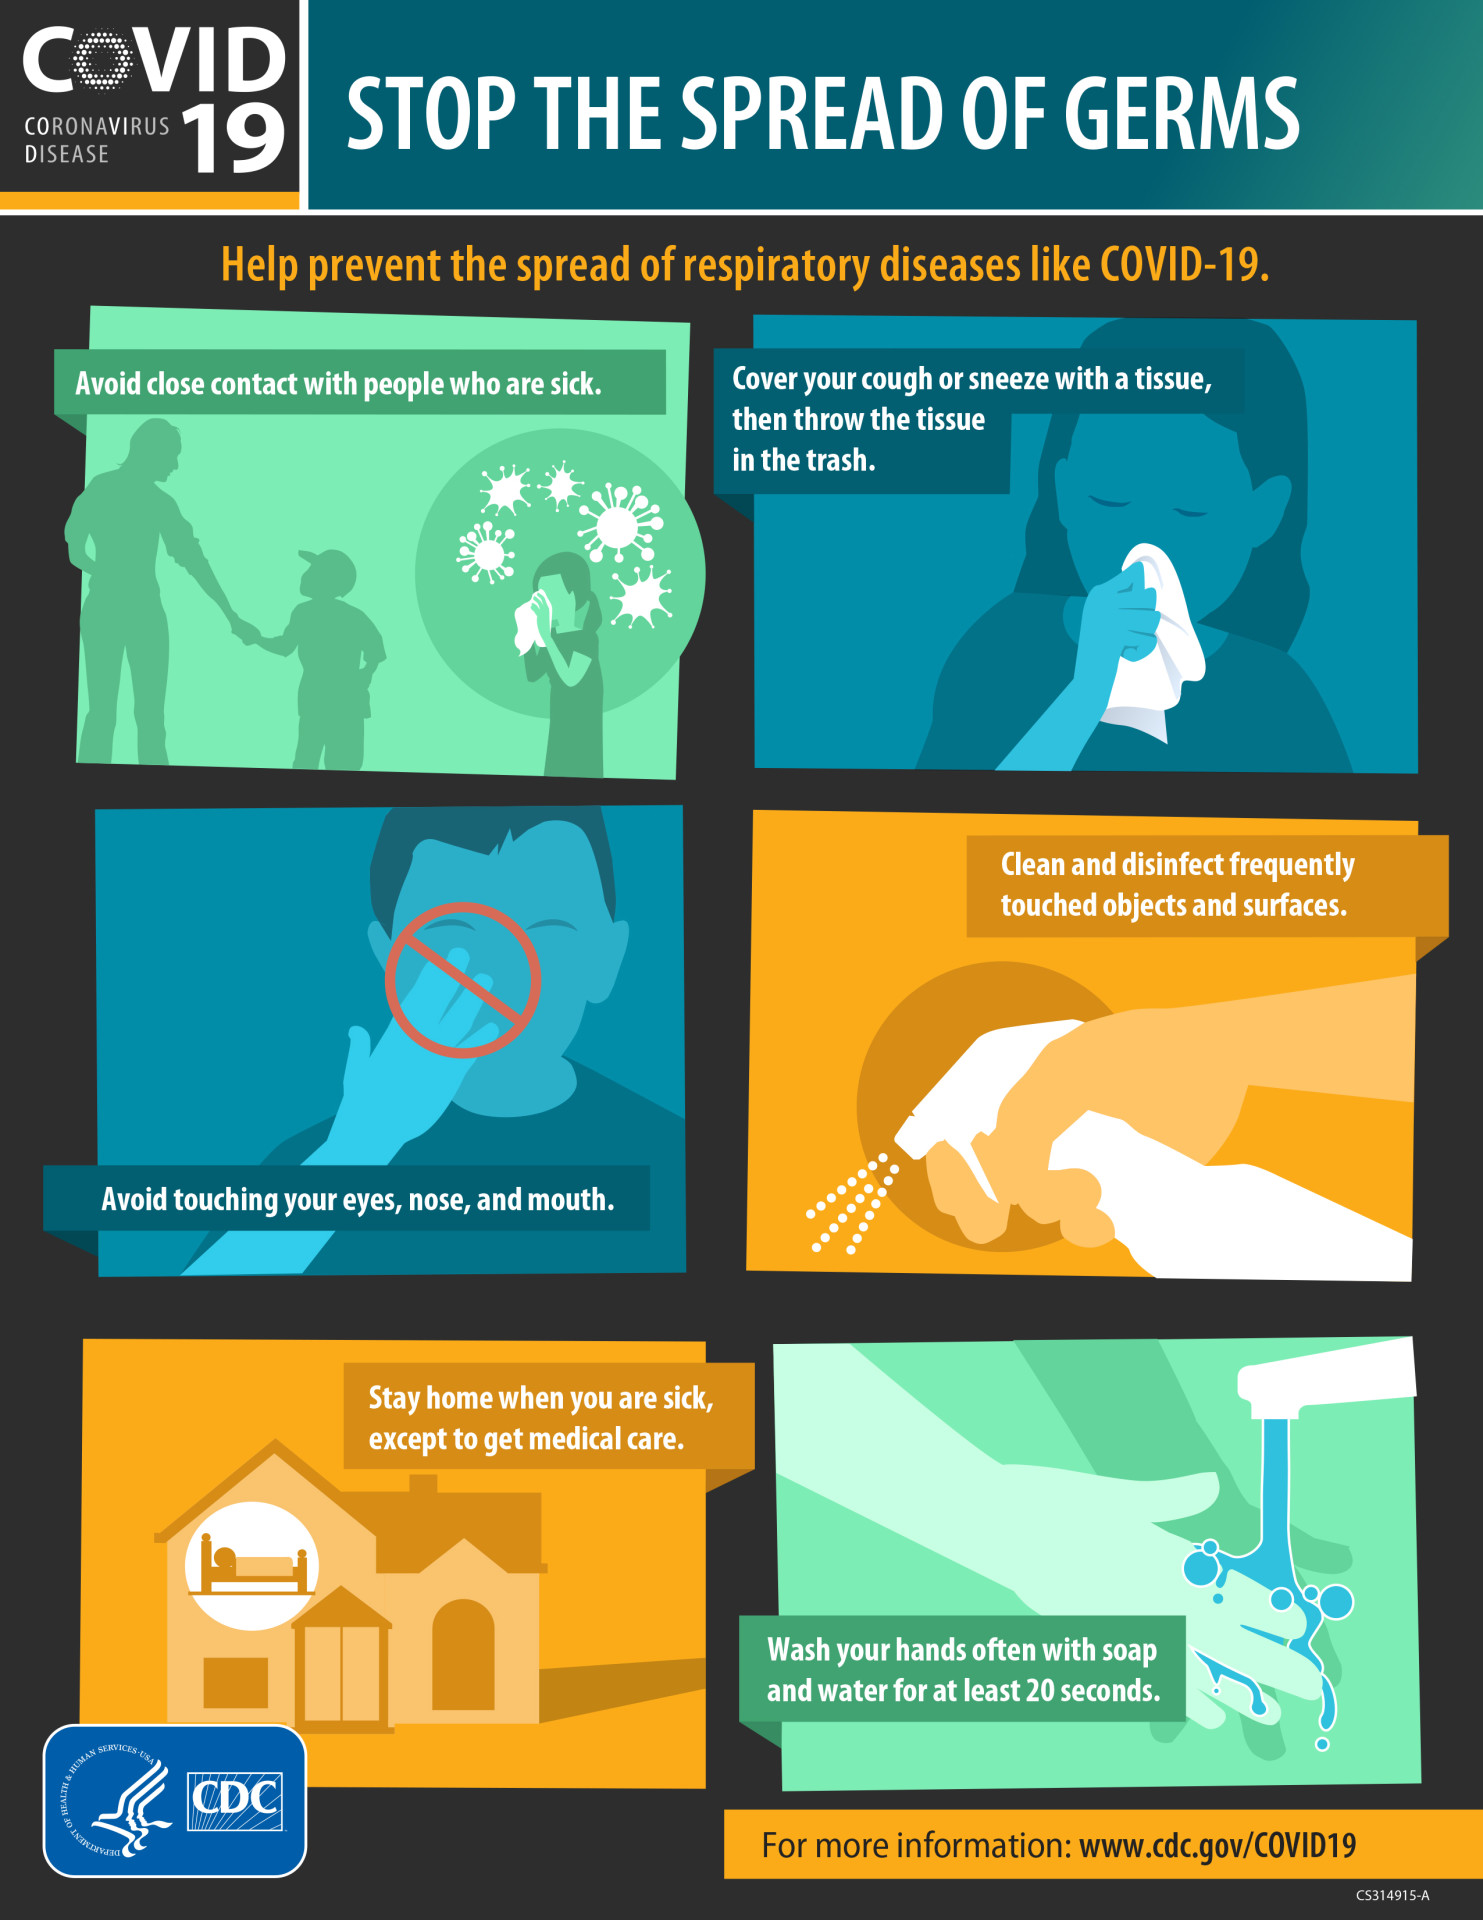 www.cdc.gov inforgraphic on how to stop the spread of disease